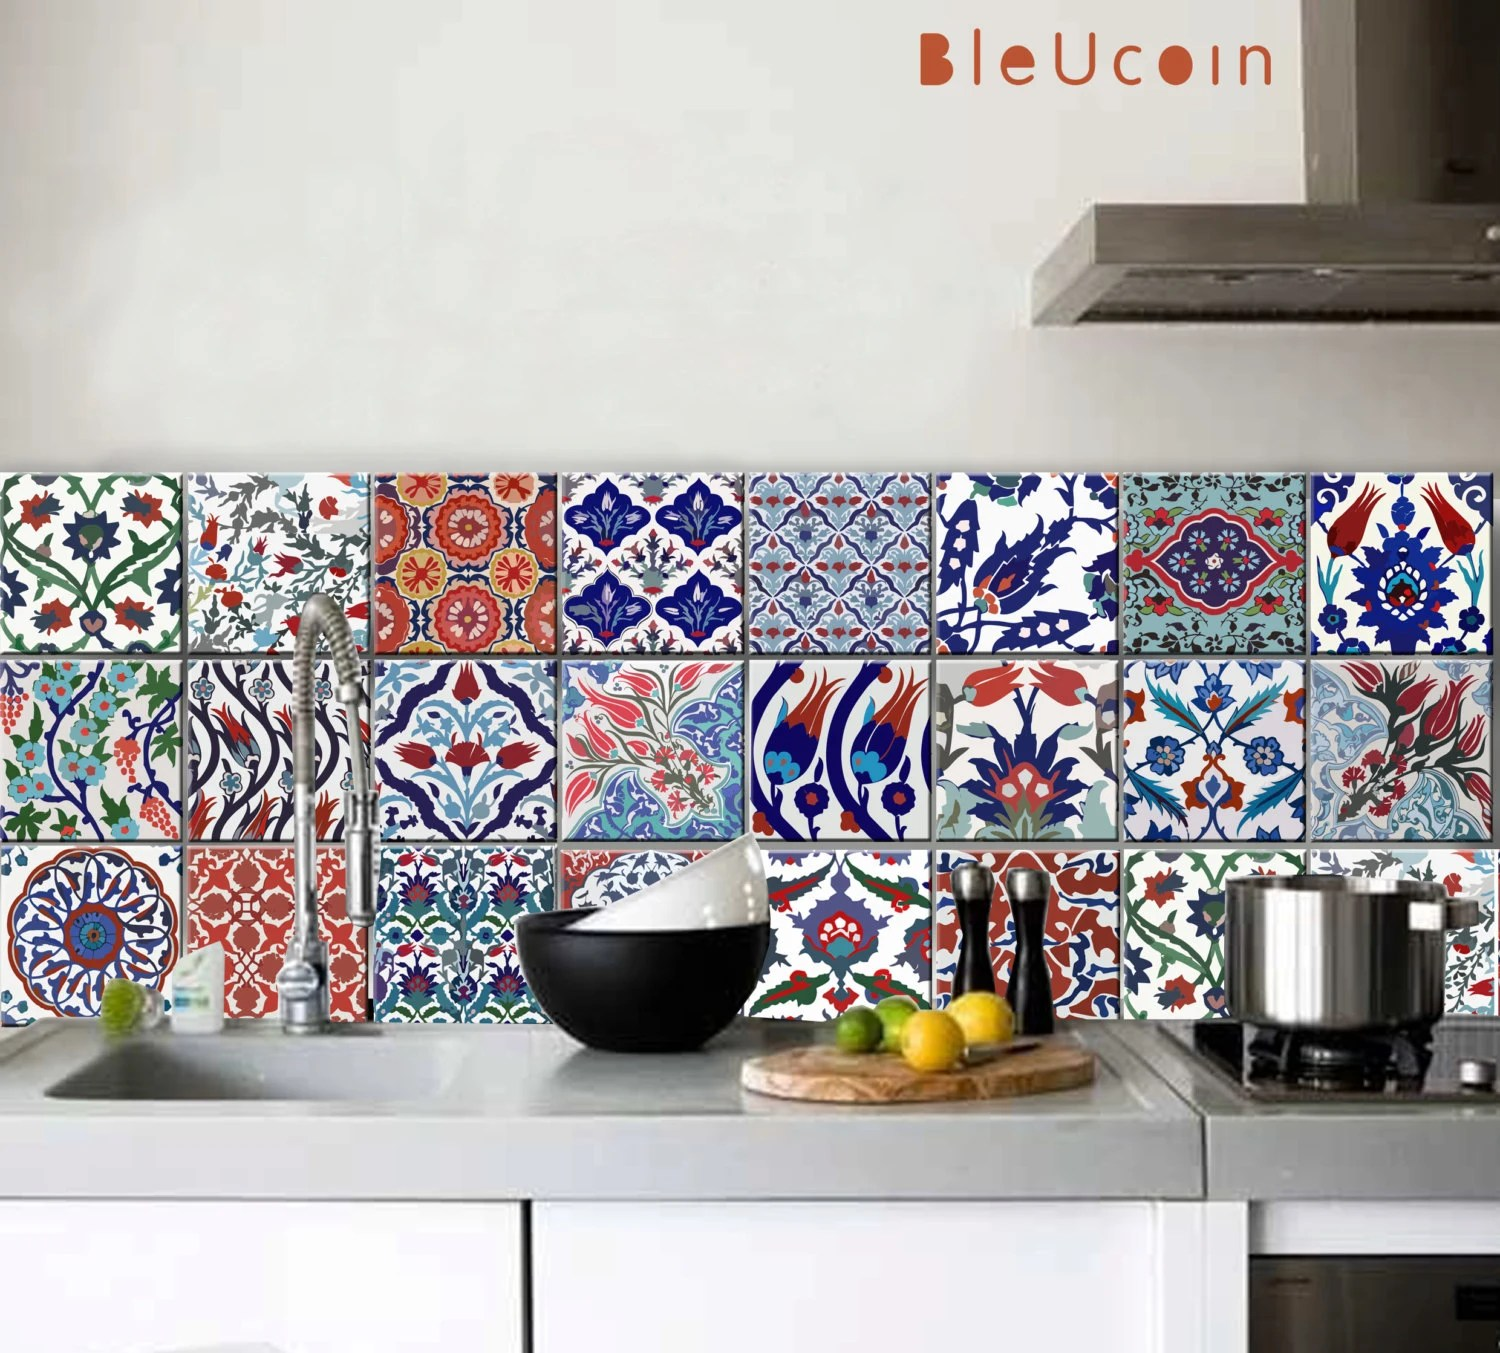 turkish tile wall floor decals for kitchen bathroom stairs door ceiling furniture removable peel and stick application pack of 44